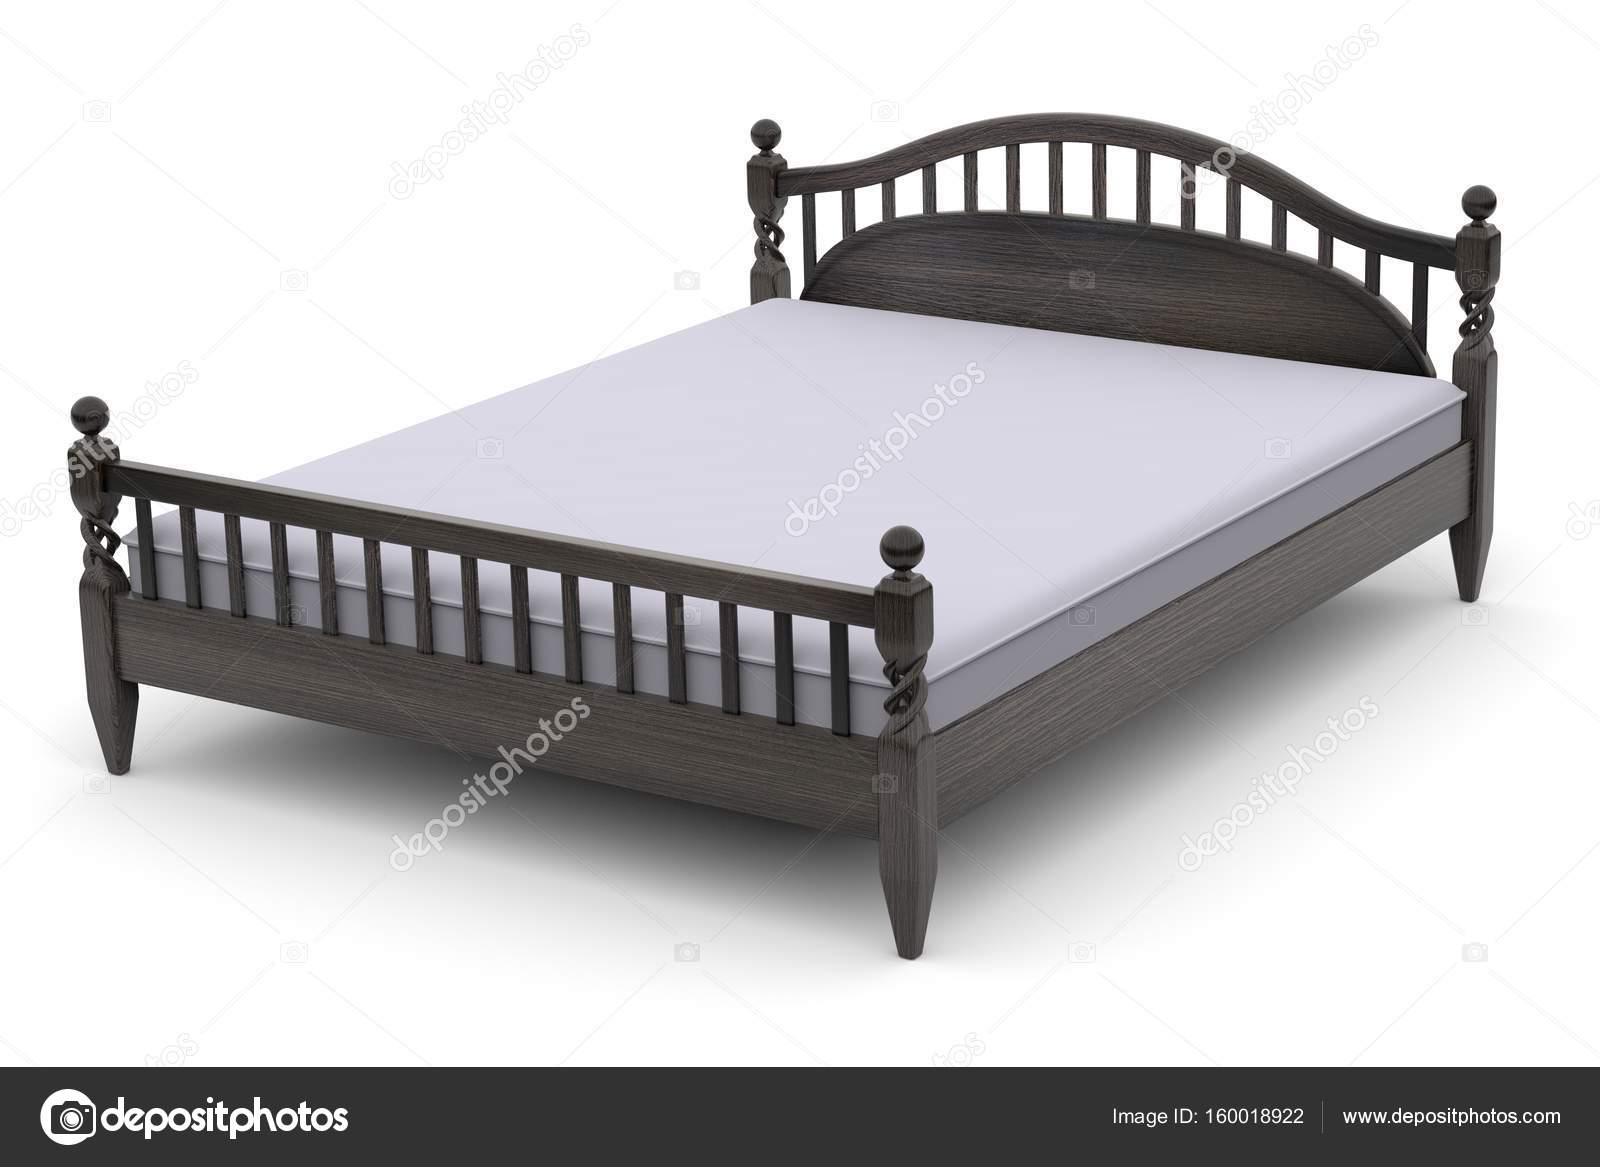 3d Illustration Of A Modern Wooden Bed Stock Photo C R Vladimir T Gmail Com 160018922